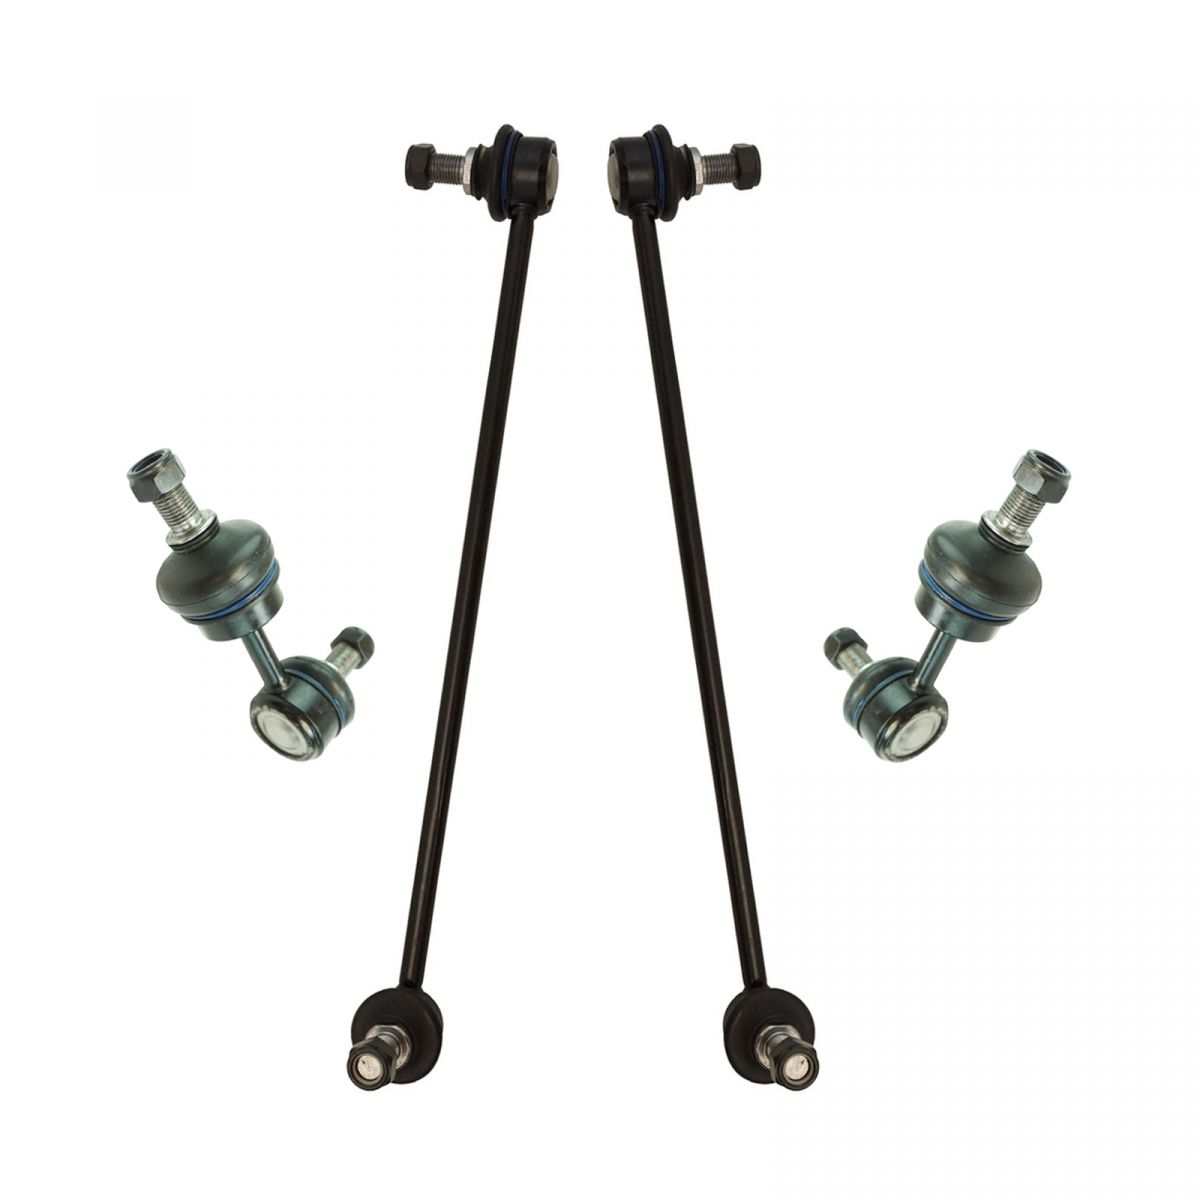 Set 2 Piece Suspension Stabilizer Sway Bar End Link Front,-With 3 Year Warranty